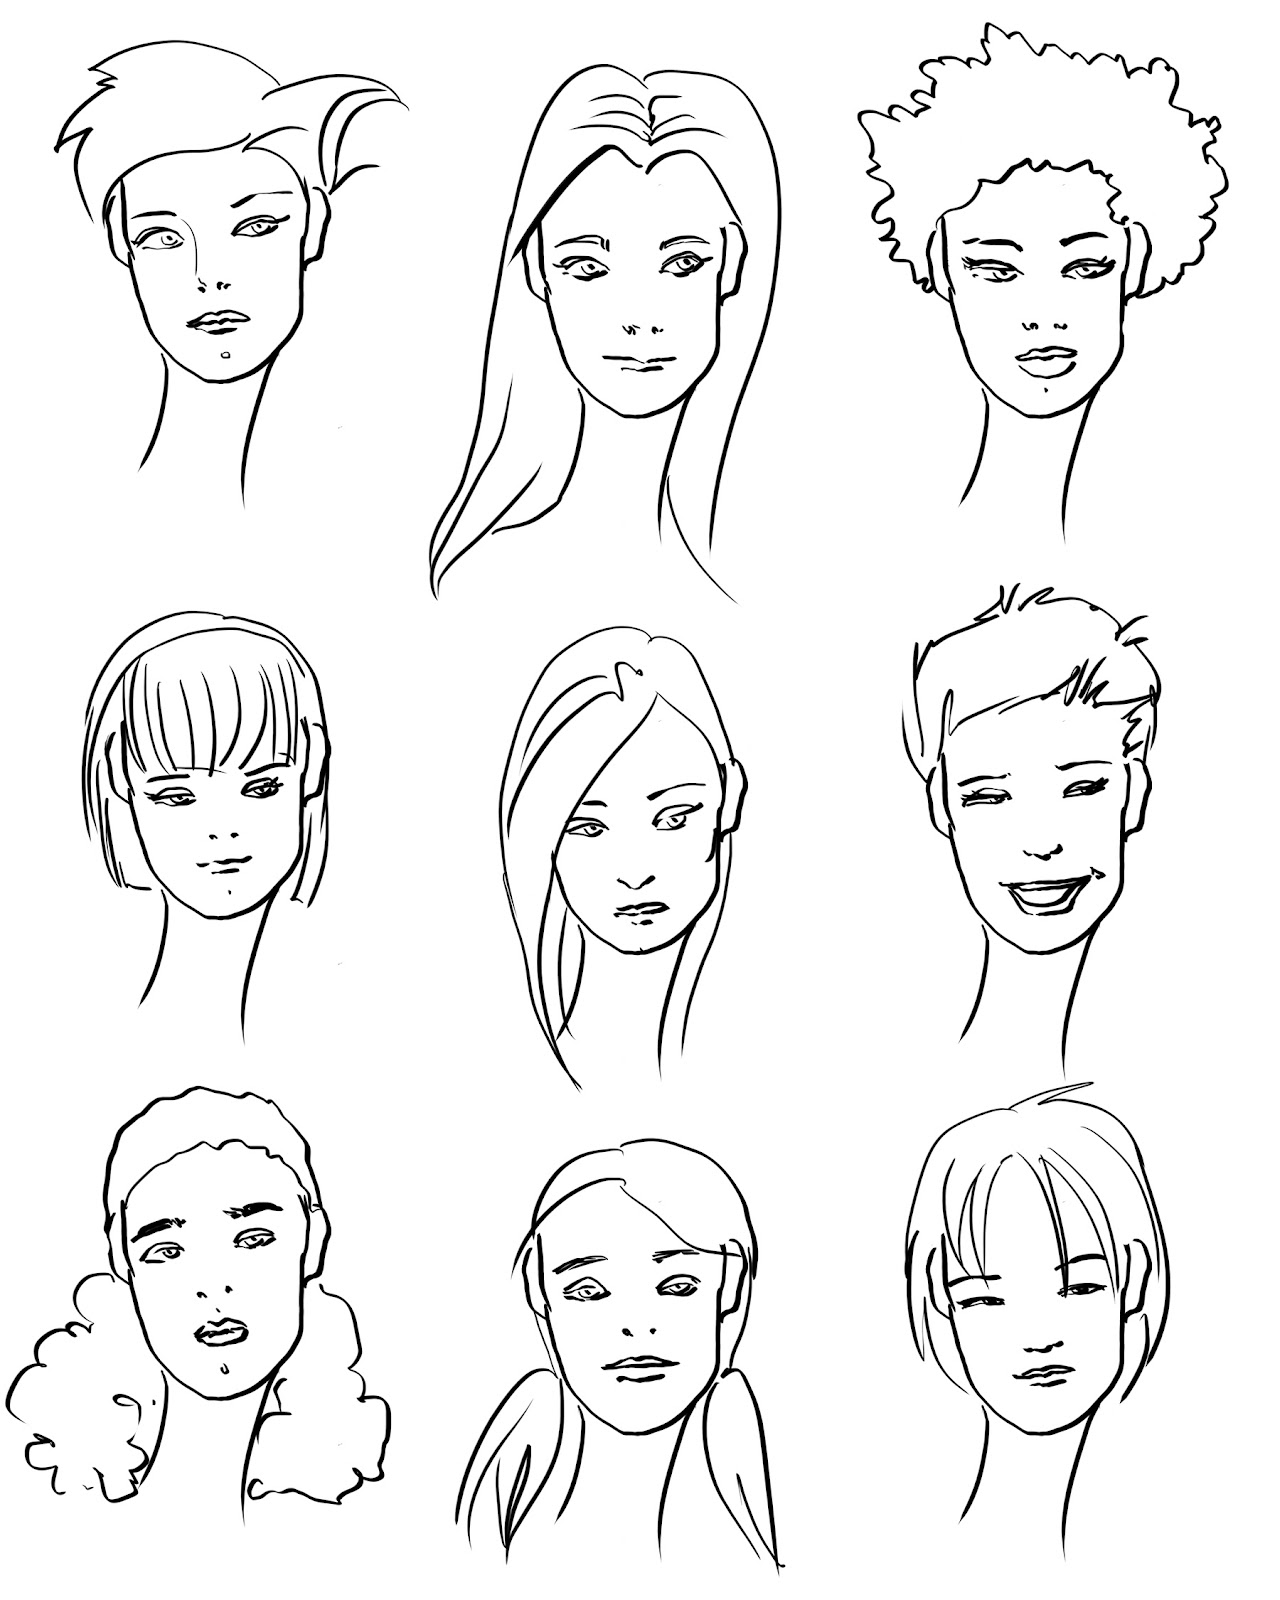 Drawn hair simple Color! 2012 Fashion: How and